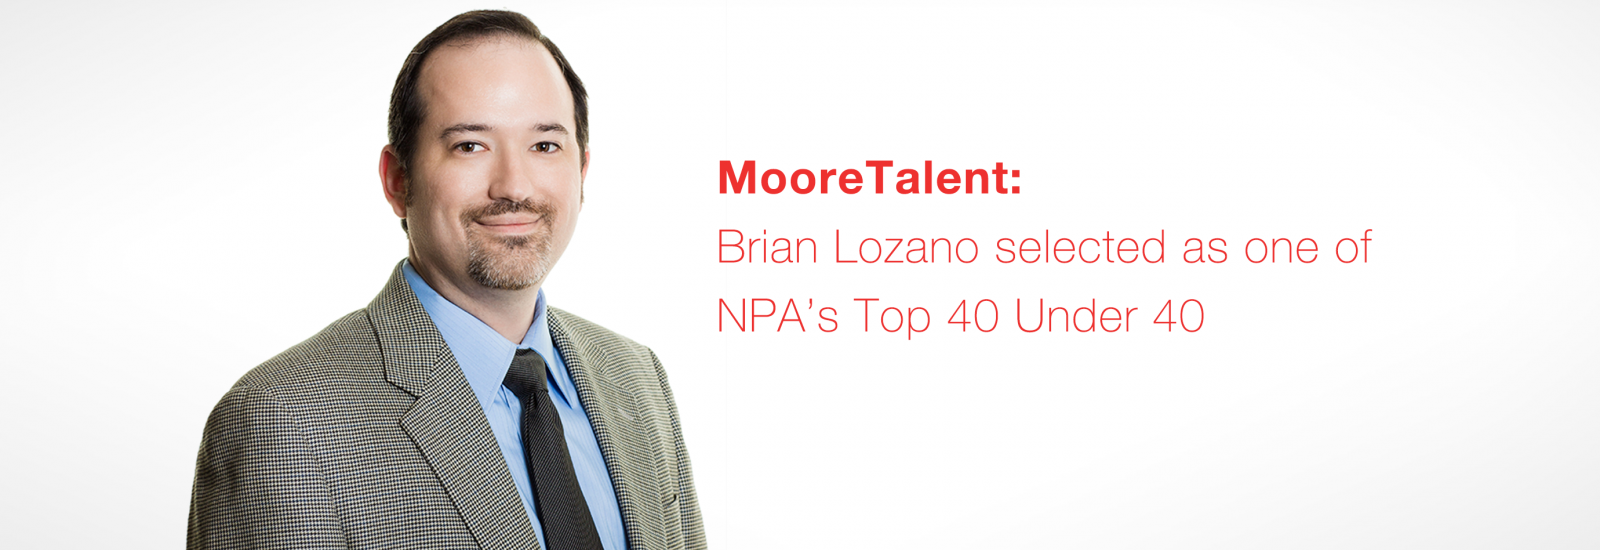 Brian Lozano selected as one of NPA's Top 40 Under 40